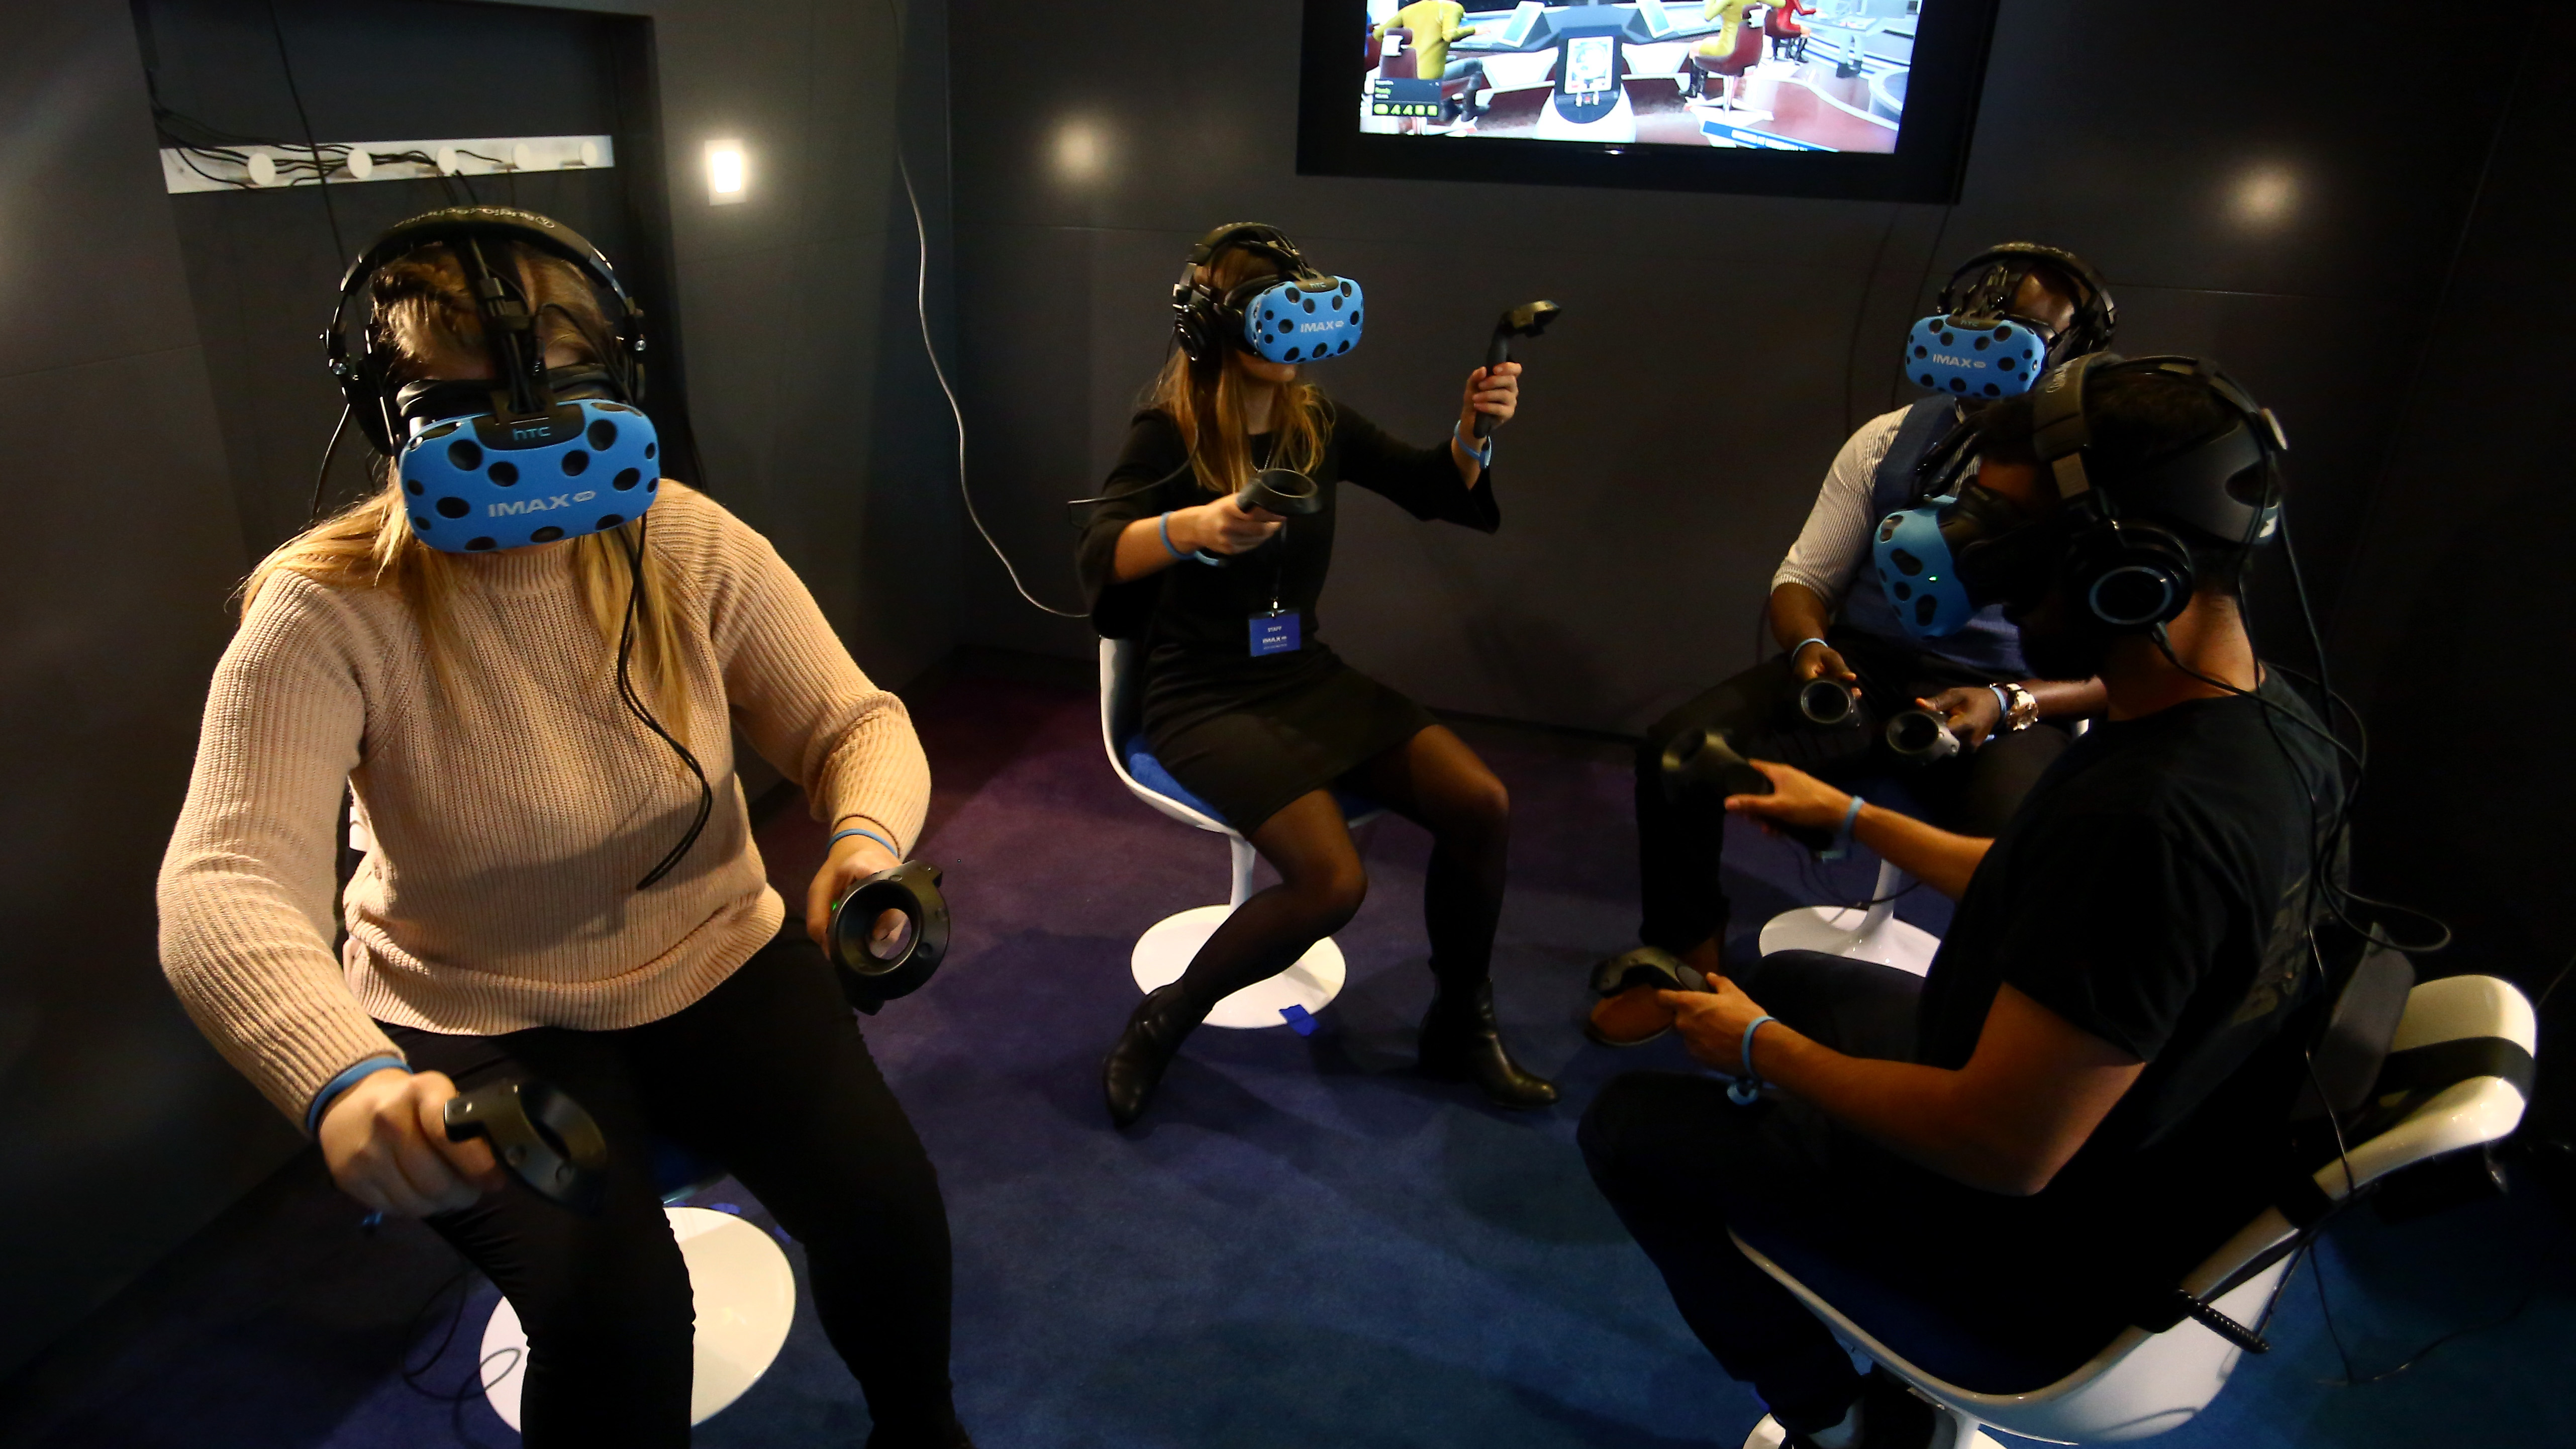 Four people playing a VR game